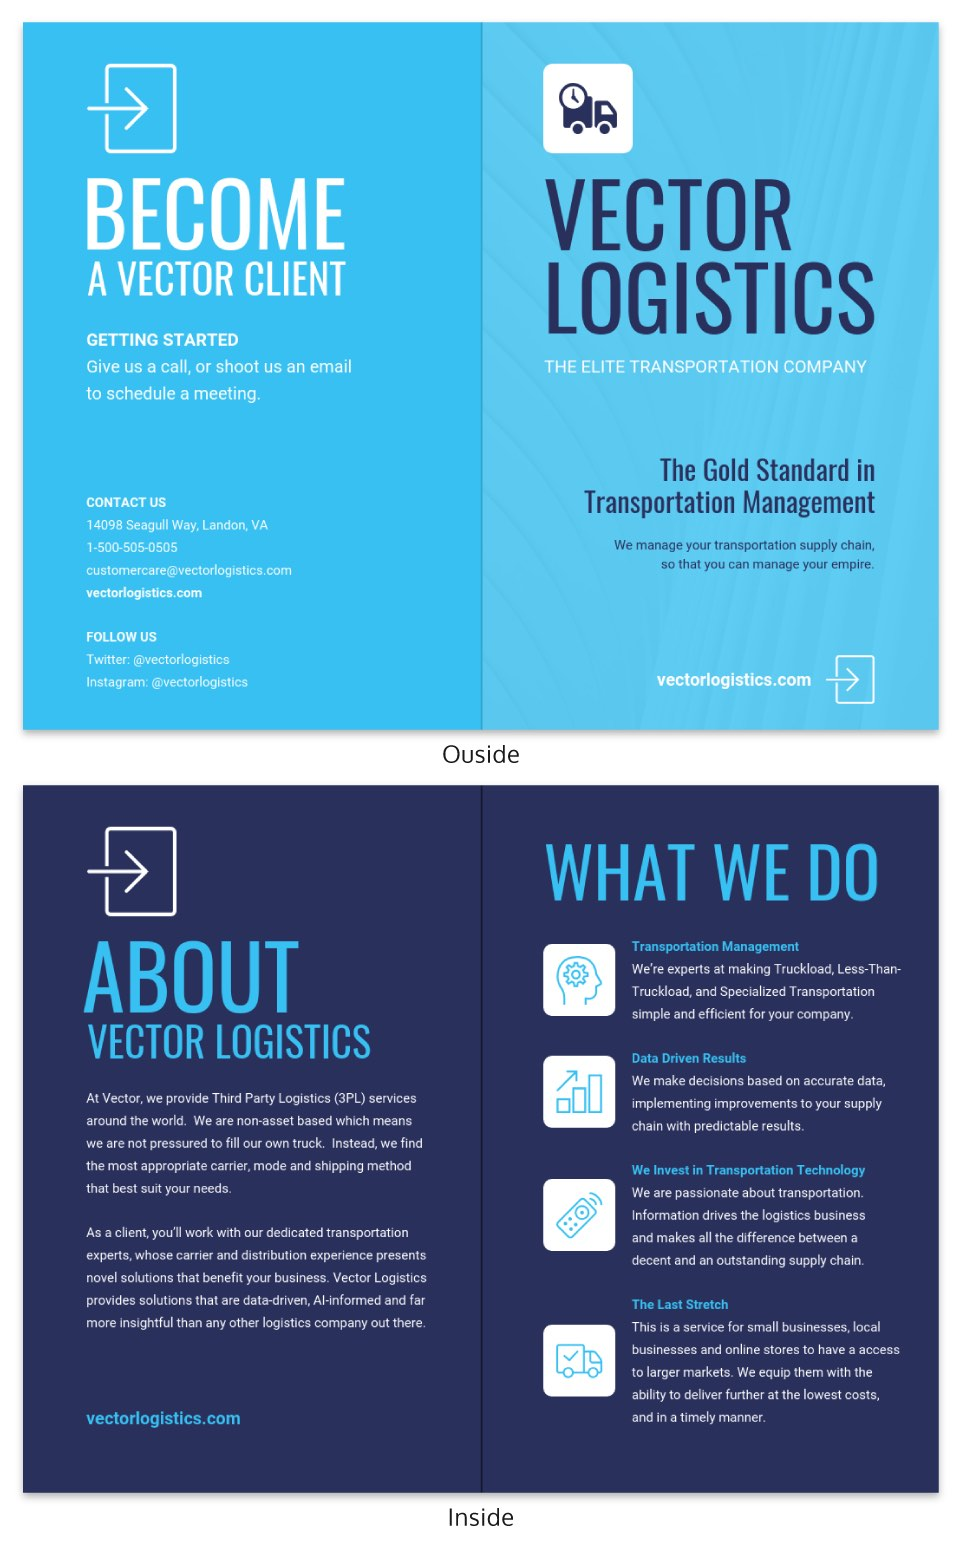 Logistics management specialist cover letter sample. Follow Us On Instagram Email Template Famoid For Instagram